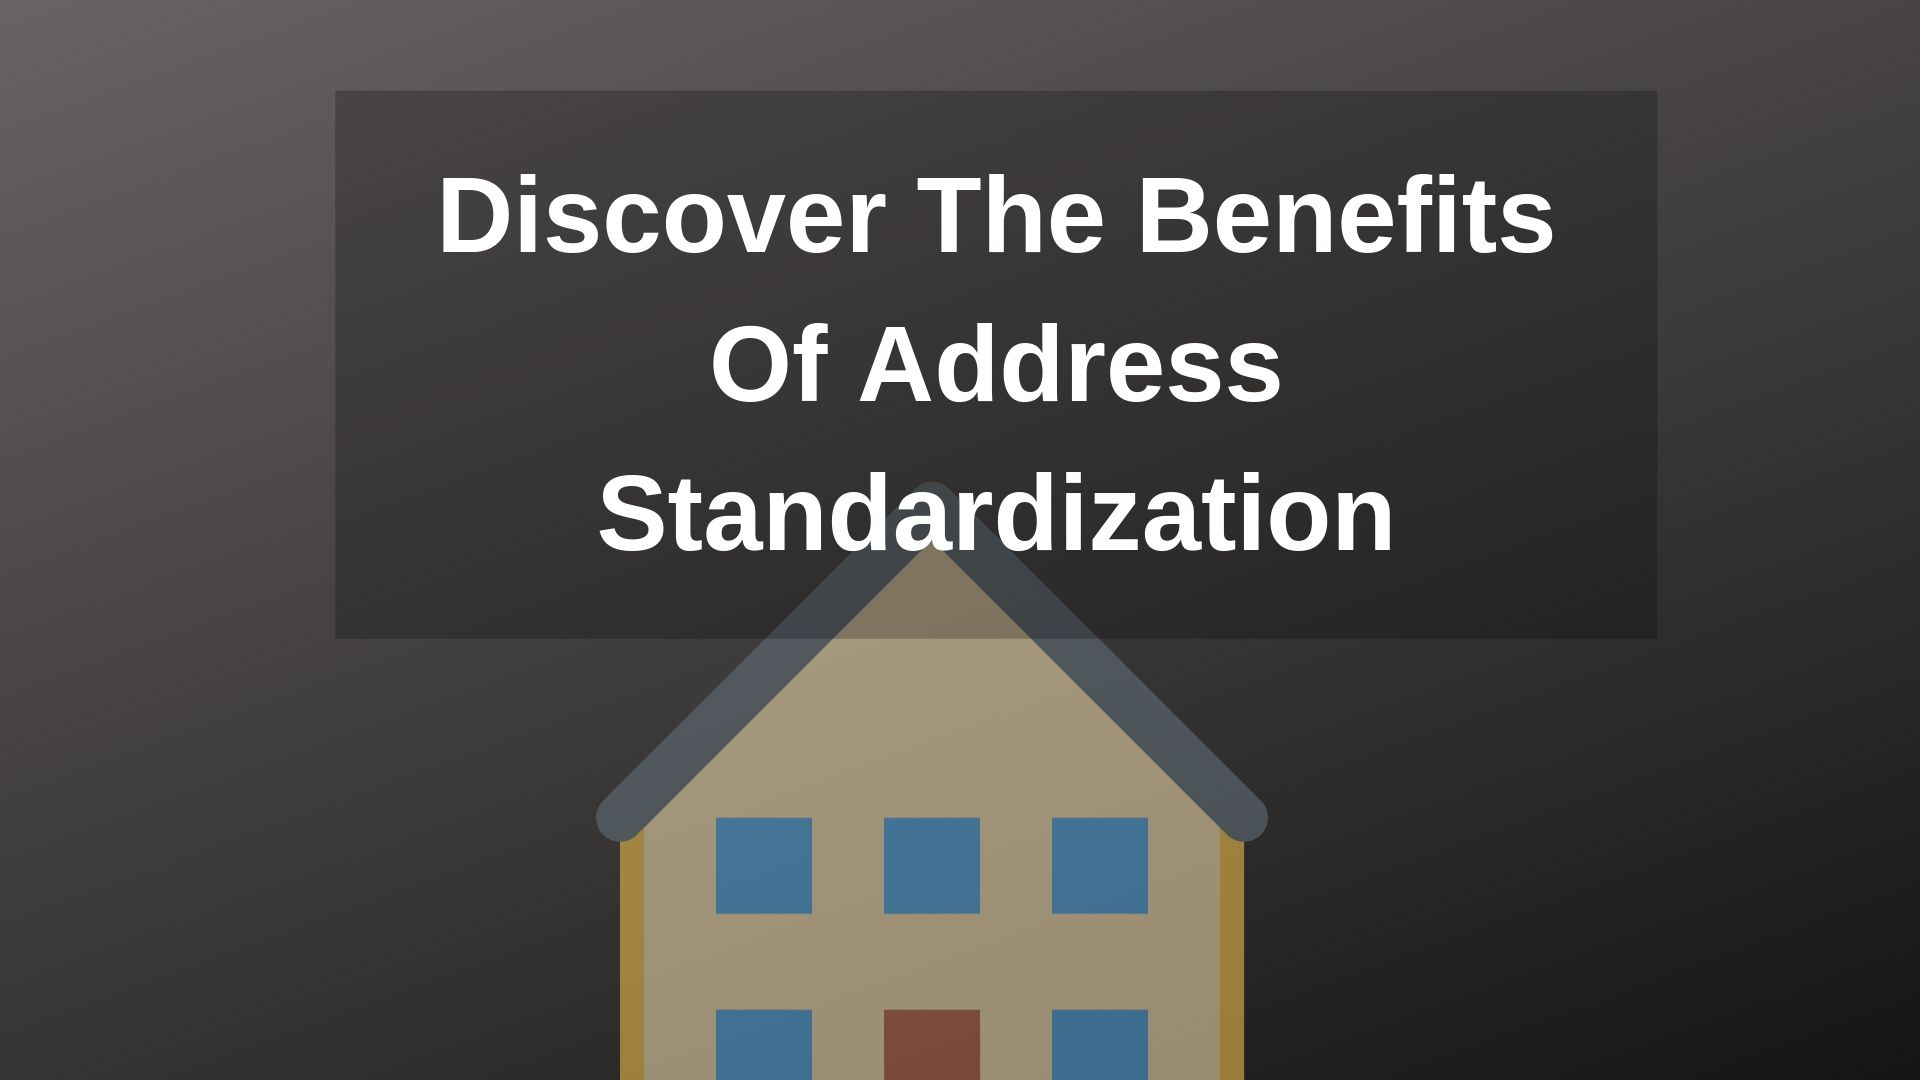 Discover The Benefits Of Address Standardization